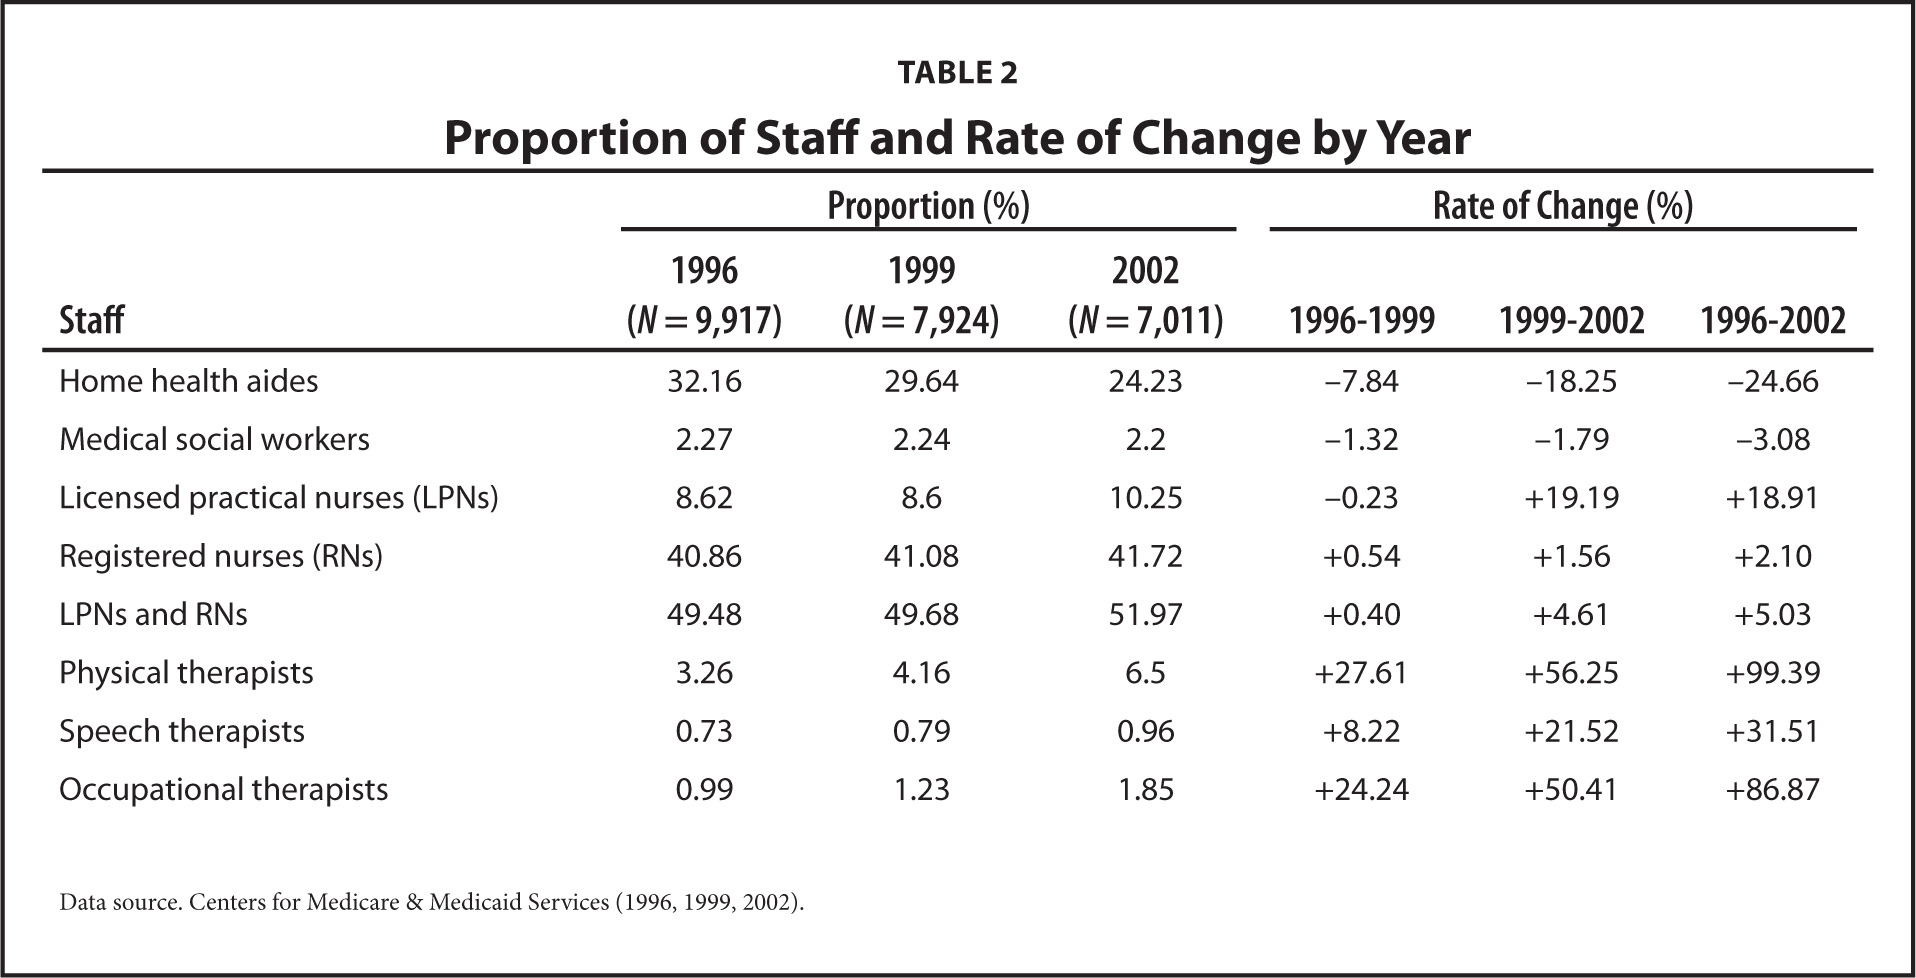 Proportion of Staff and Rate of Change by Year